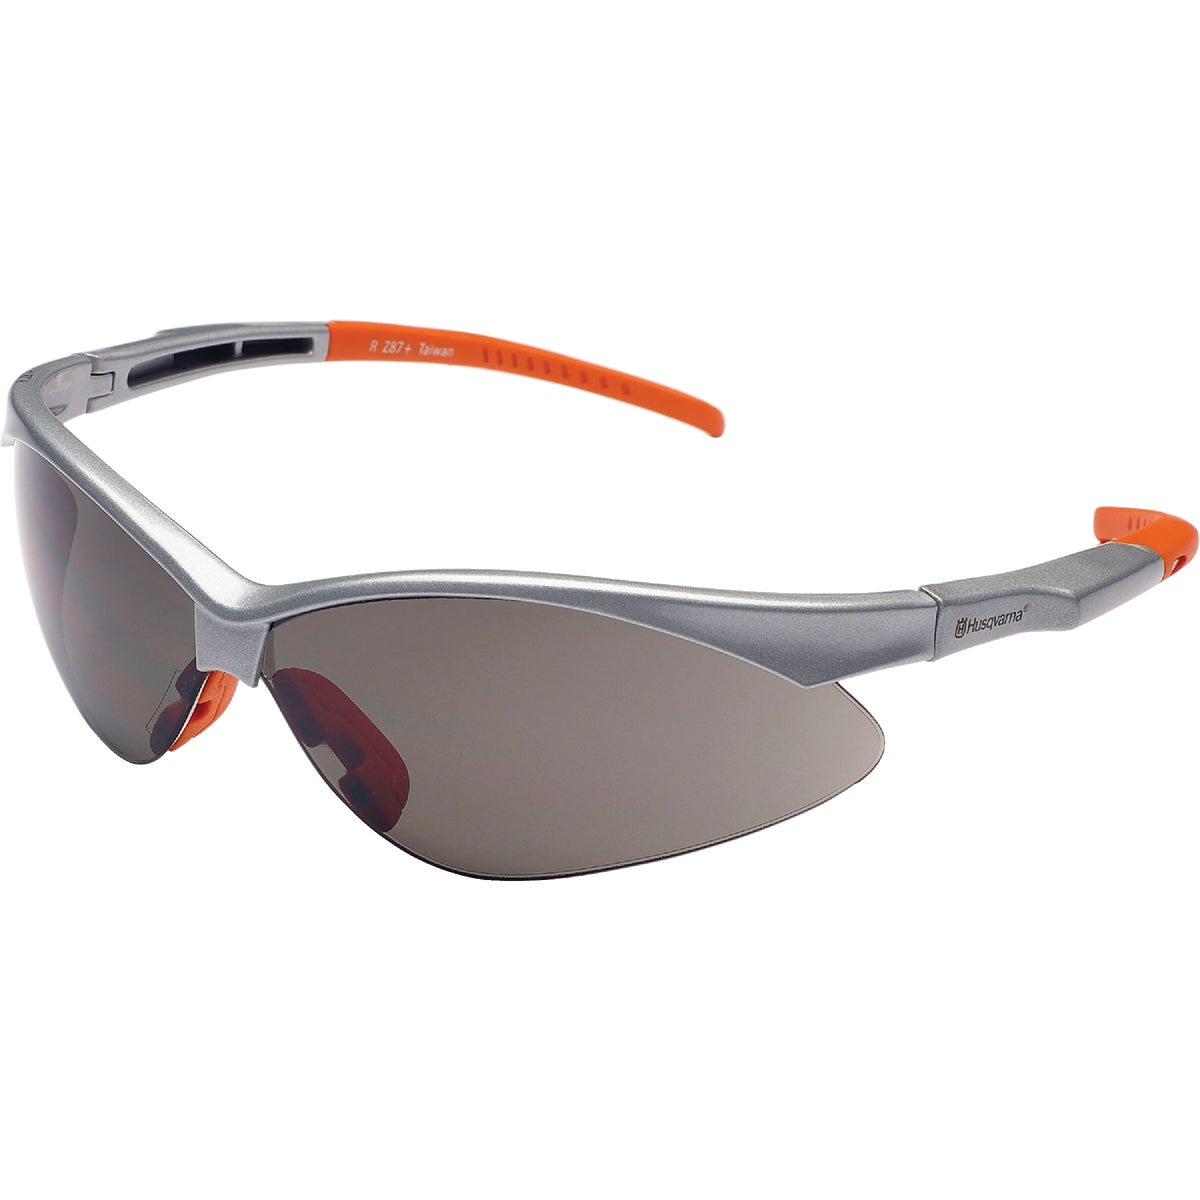 SAFETY GLASSES - 531300011 by Husqvarna Outdoor